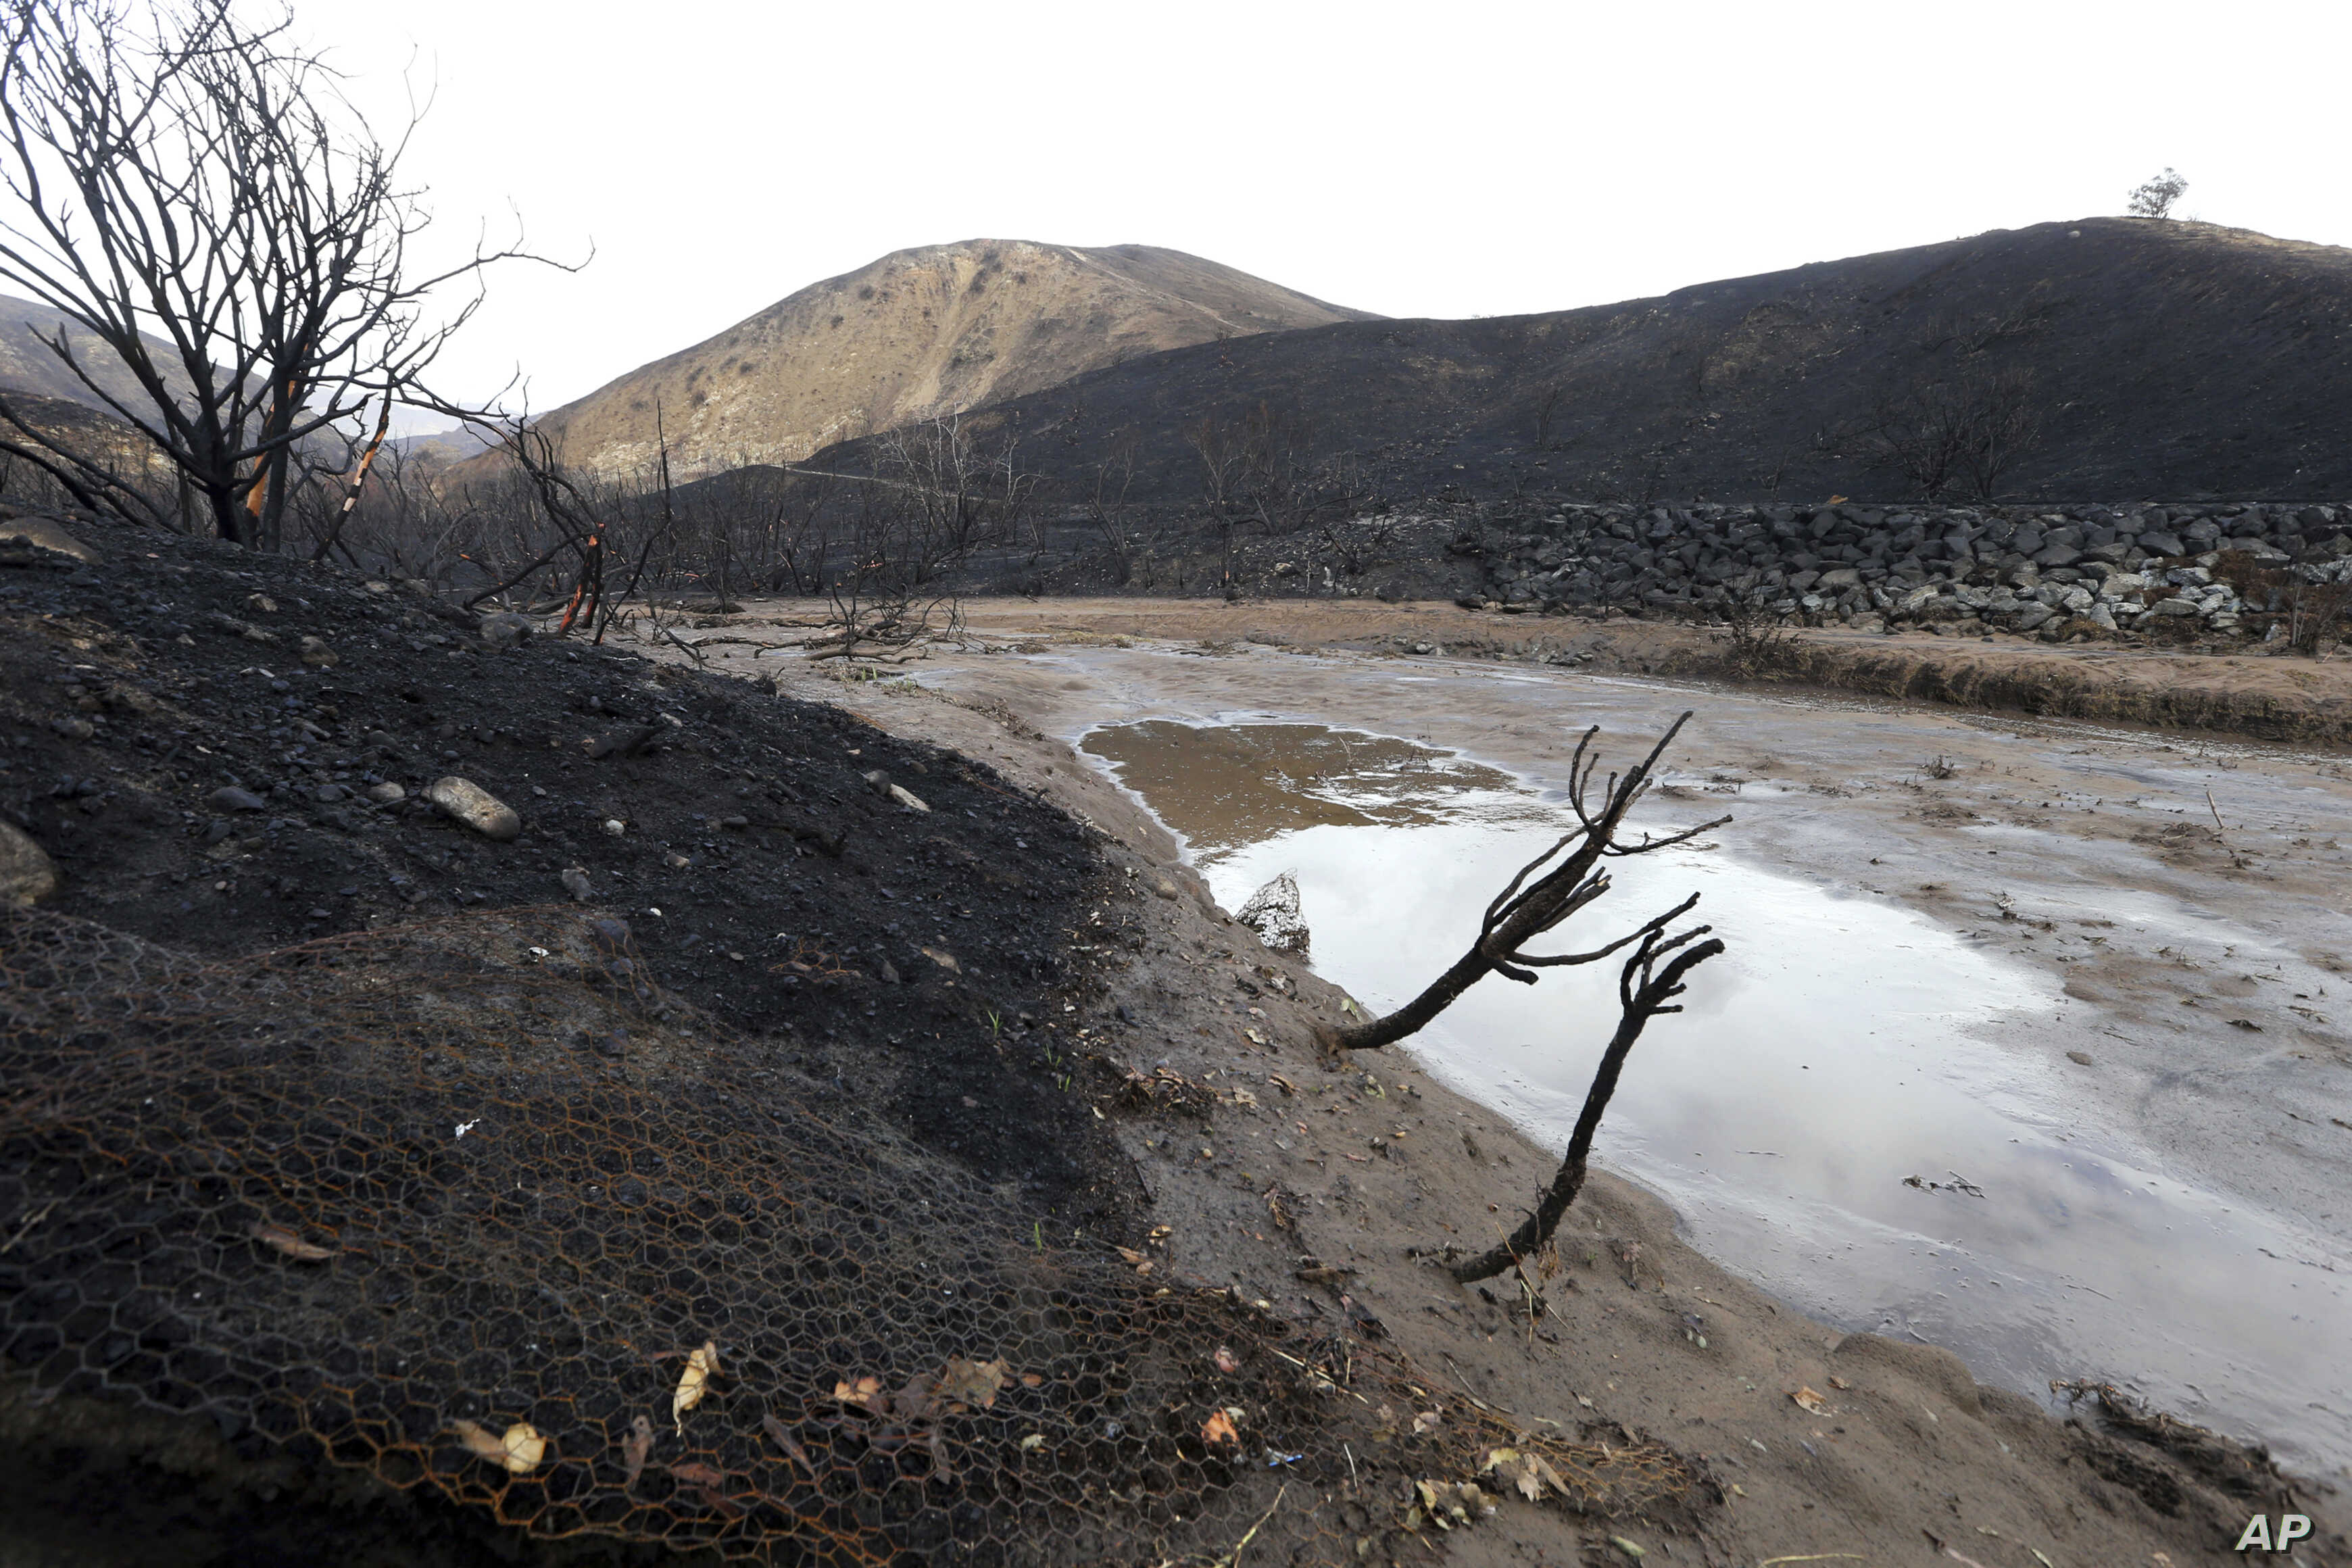 Mud and debris has washed down normally-dry Solstice Creek in an area burned by the Woolsey Fire in Malibu, Calif.,  Nov. 29, 2018. Bands of heavy rain are moving across Southern California, raising concerns about possible mudslides.